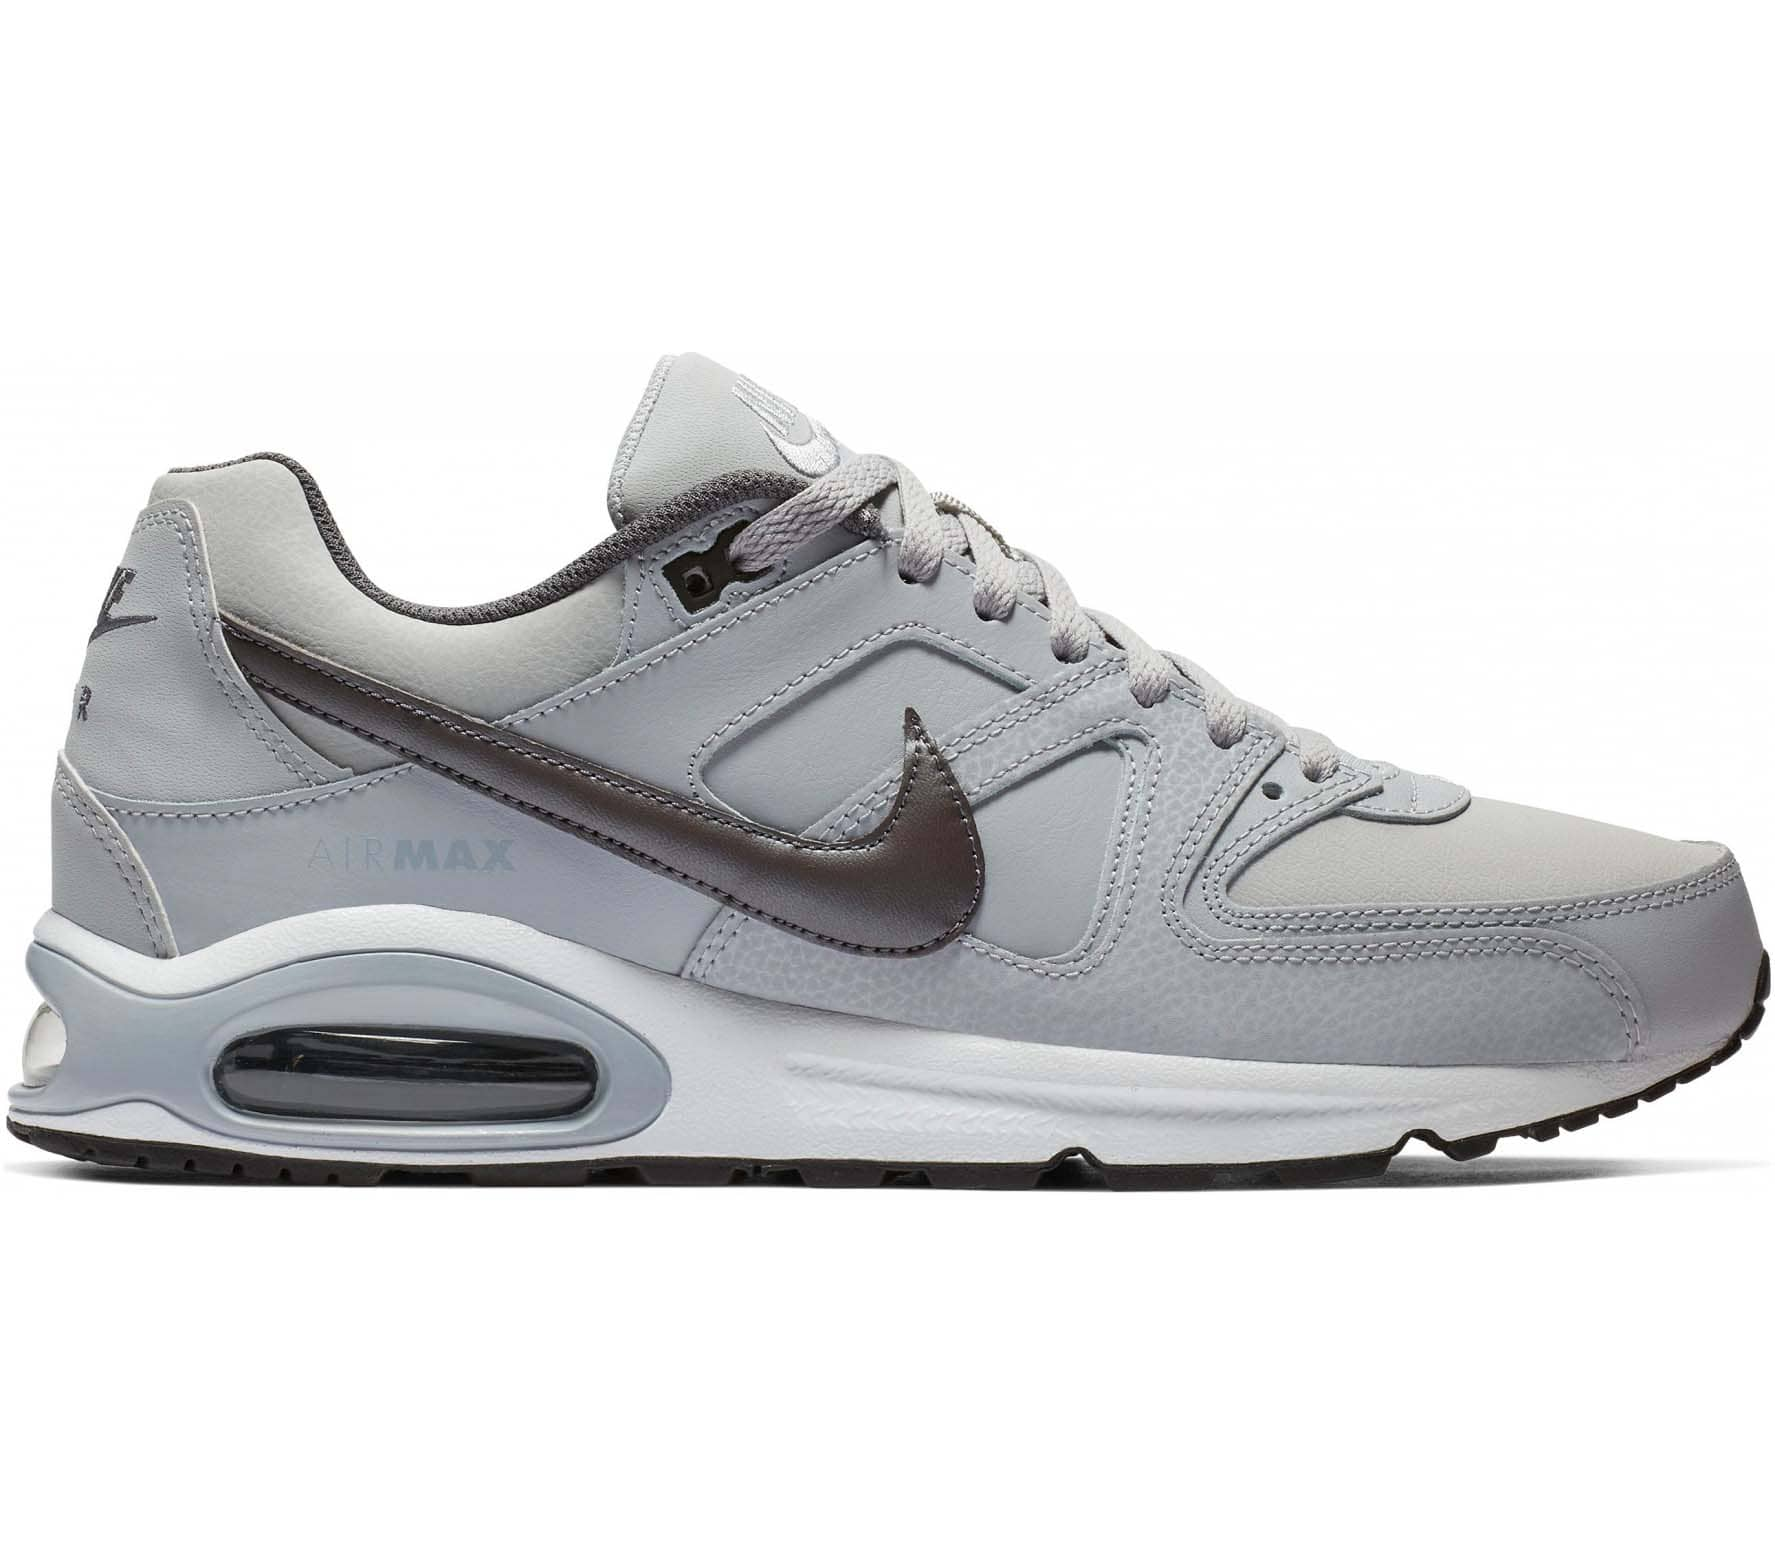 Herren Nike Air Max Command Leather Sneaker Schwarz